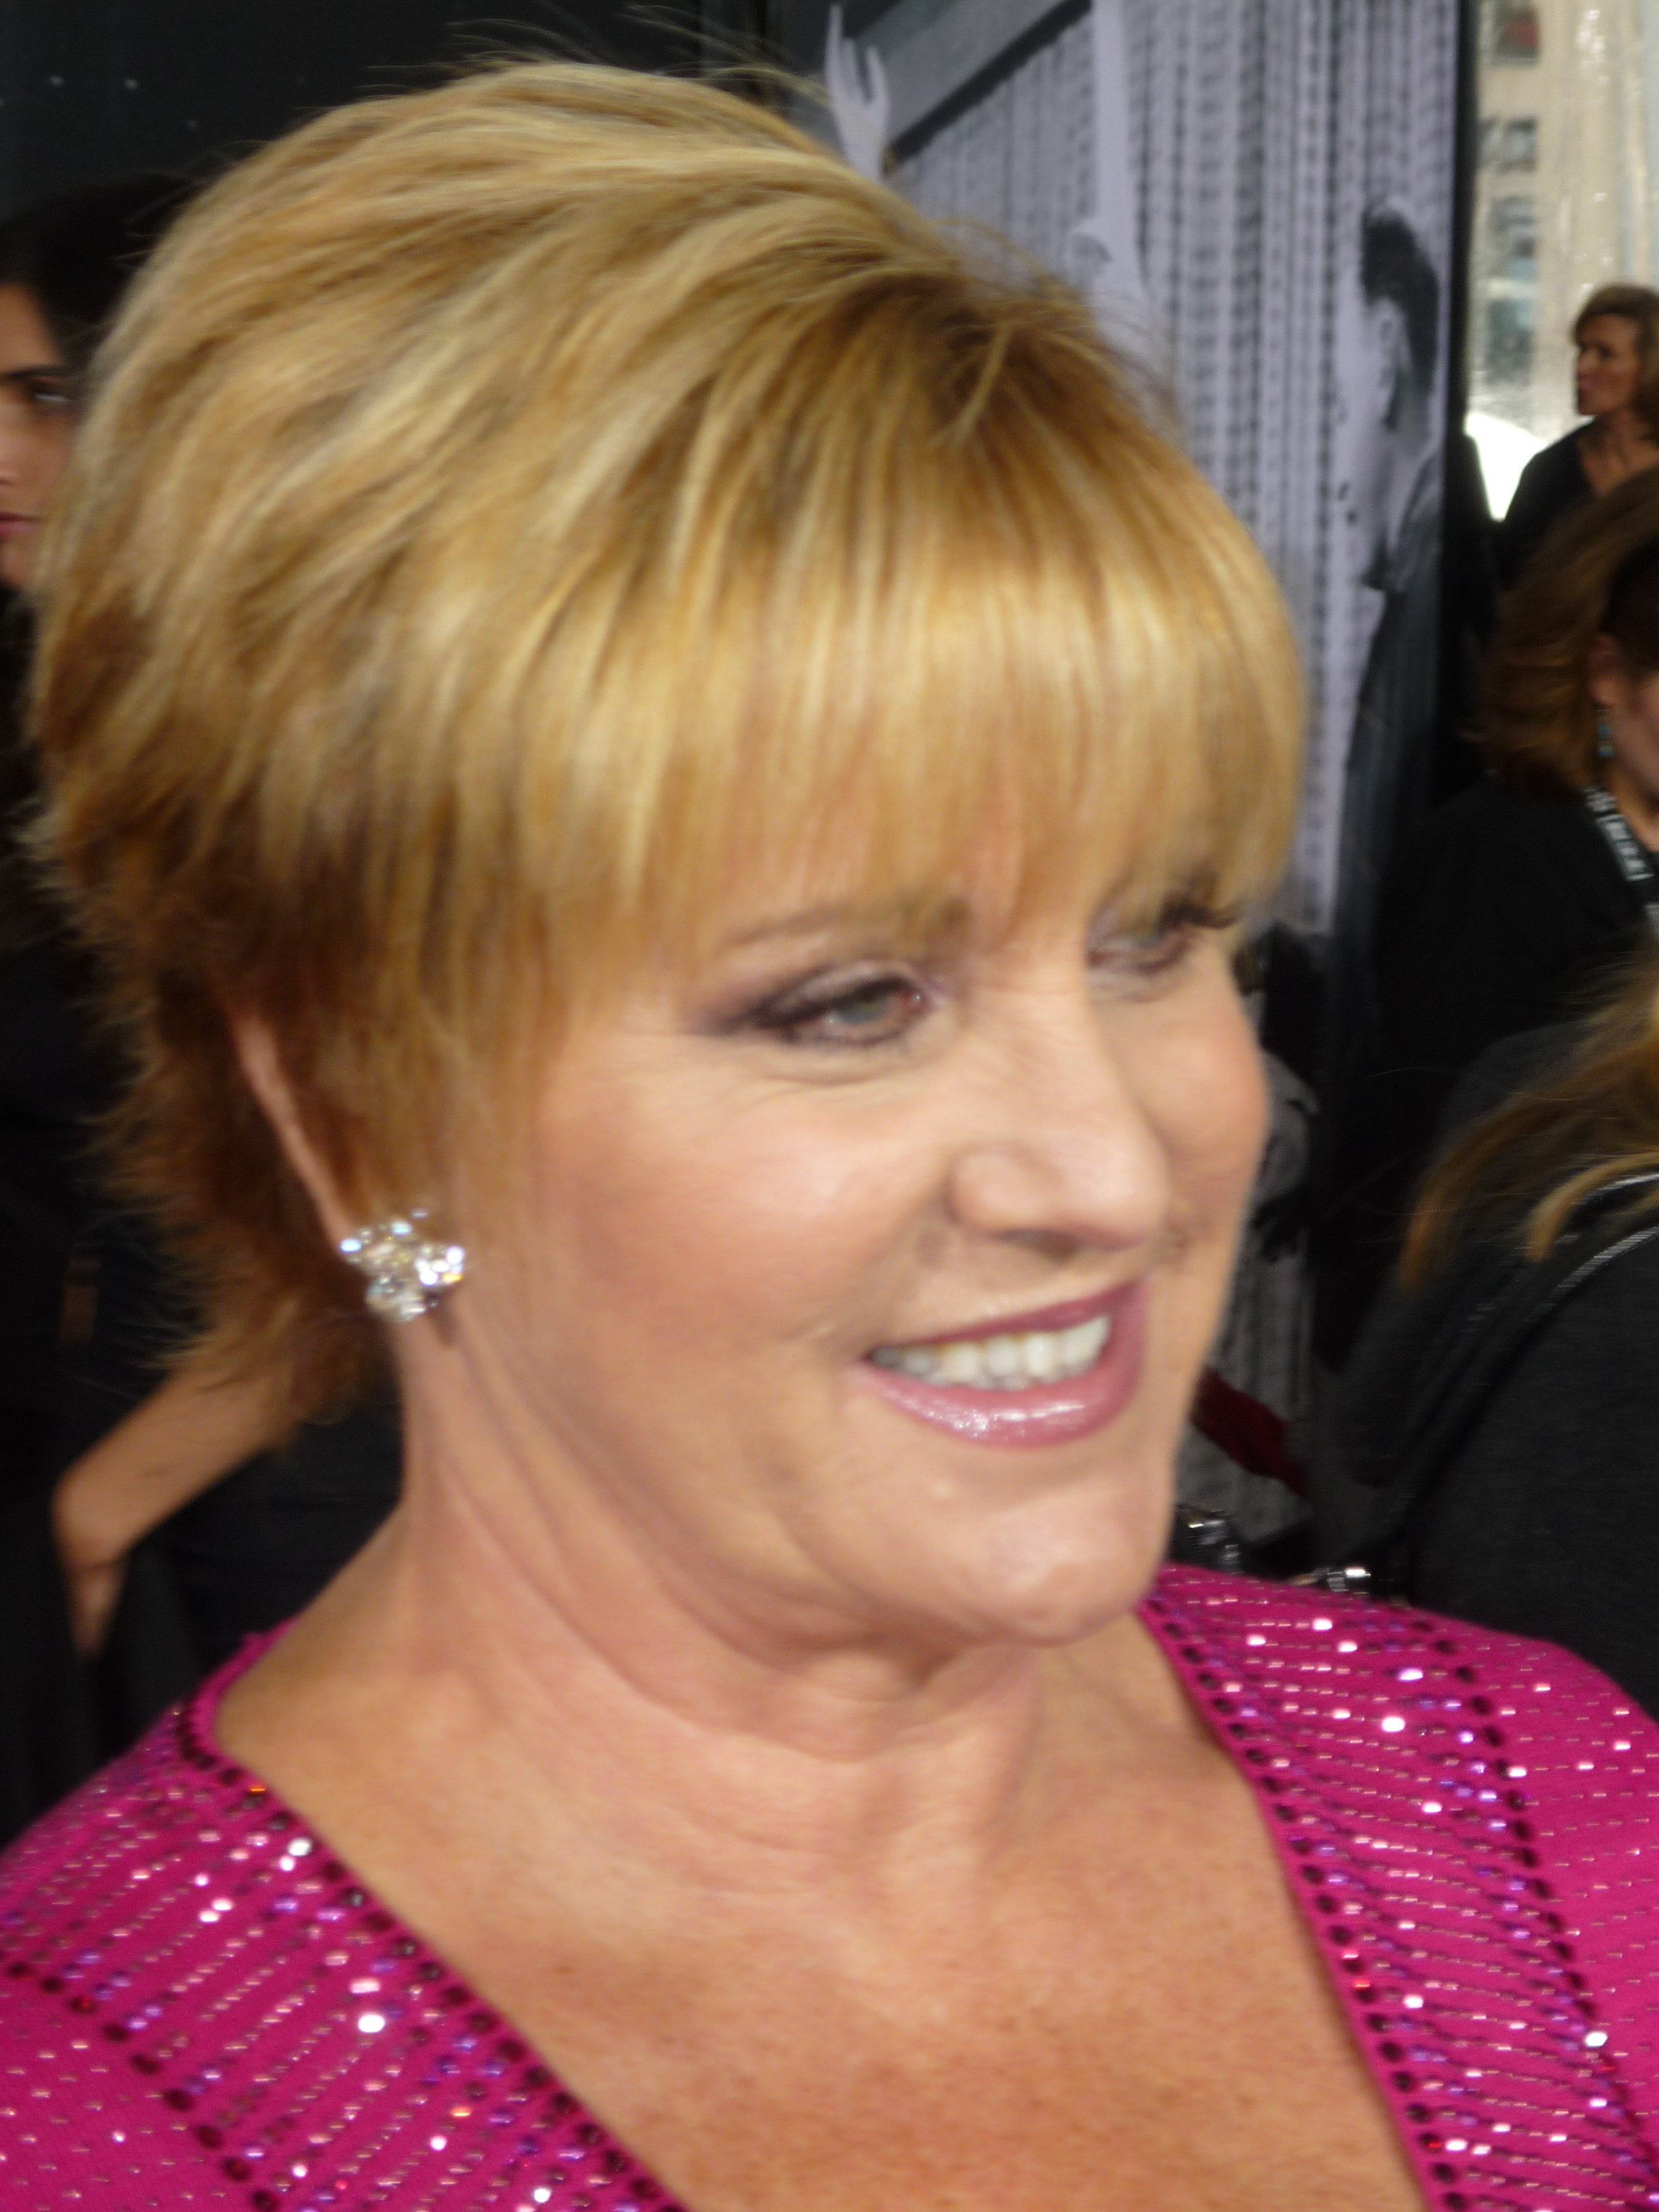 Lorna Luft speaking to media personnel in May 2010 | Source: Wikimedia Commons